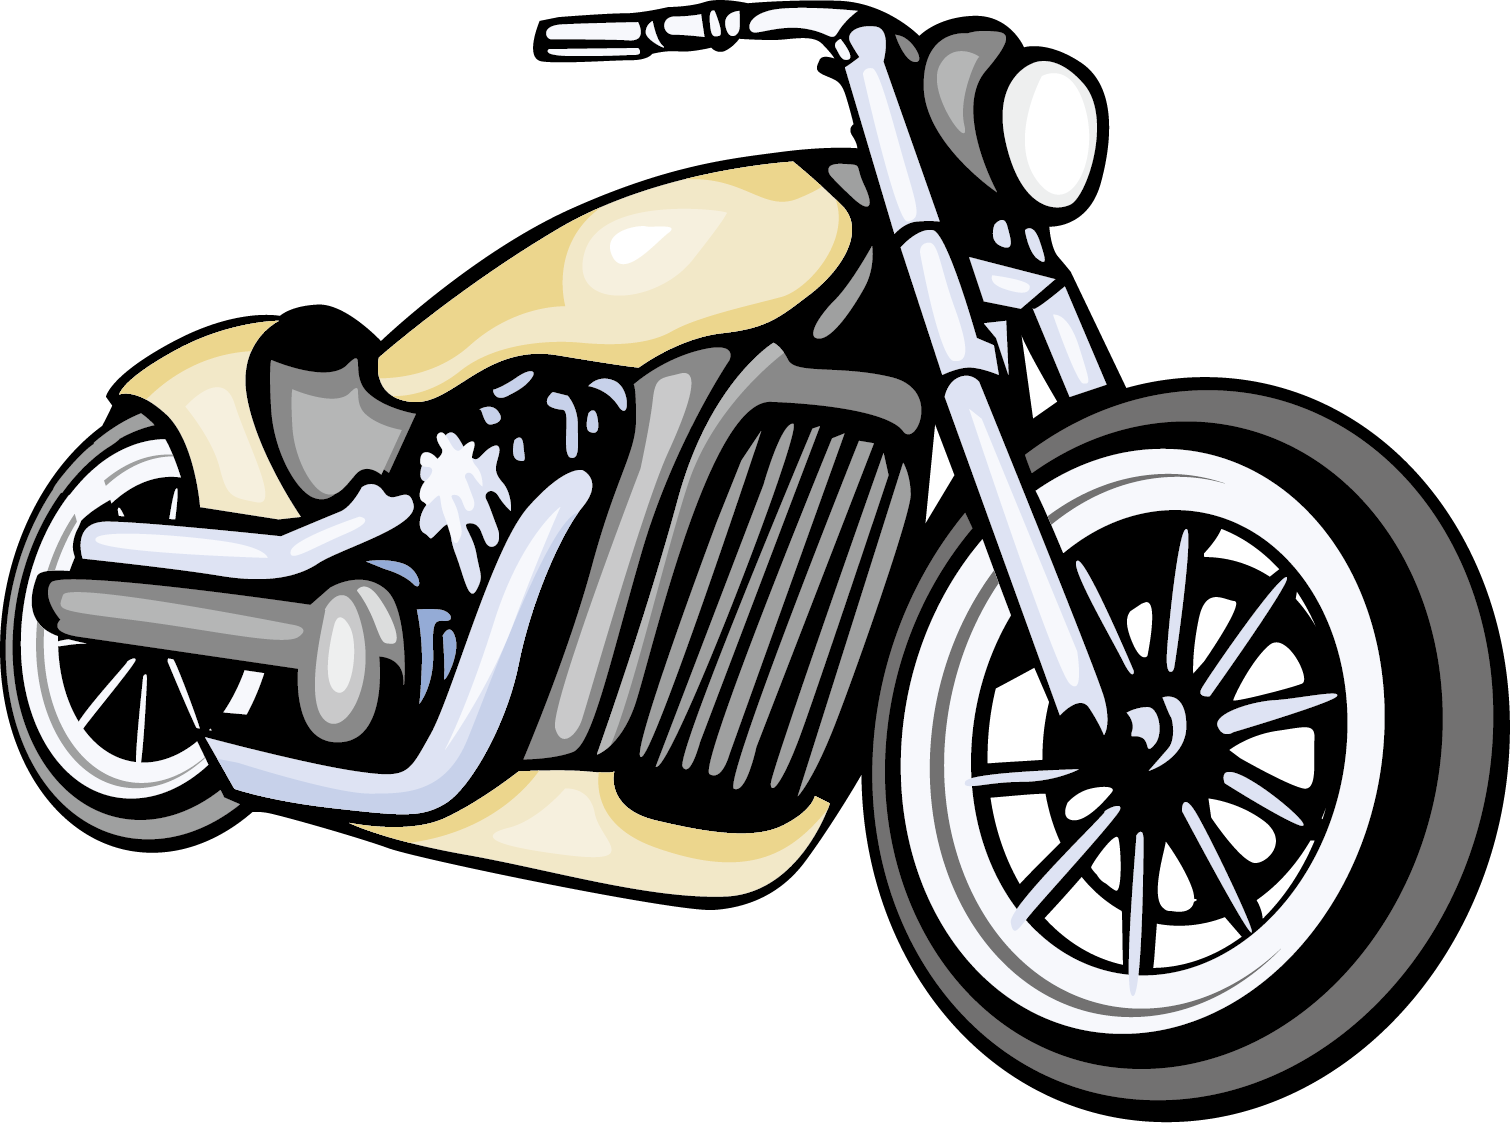 Motorcycle clipart bagger. Harley davidson for free